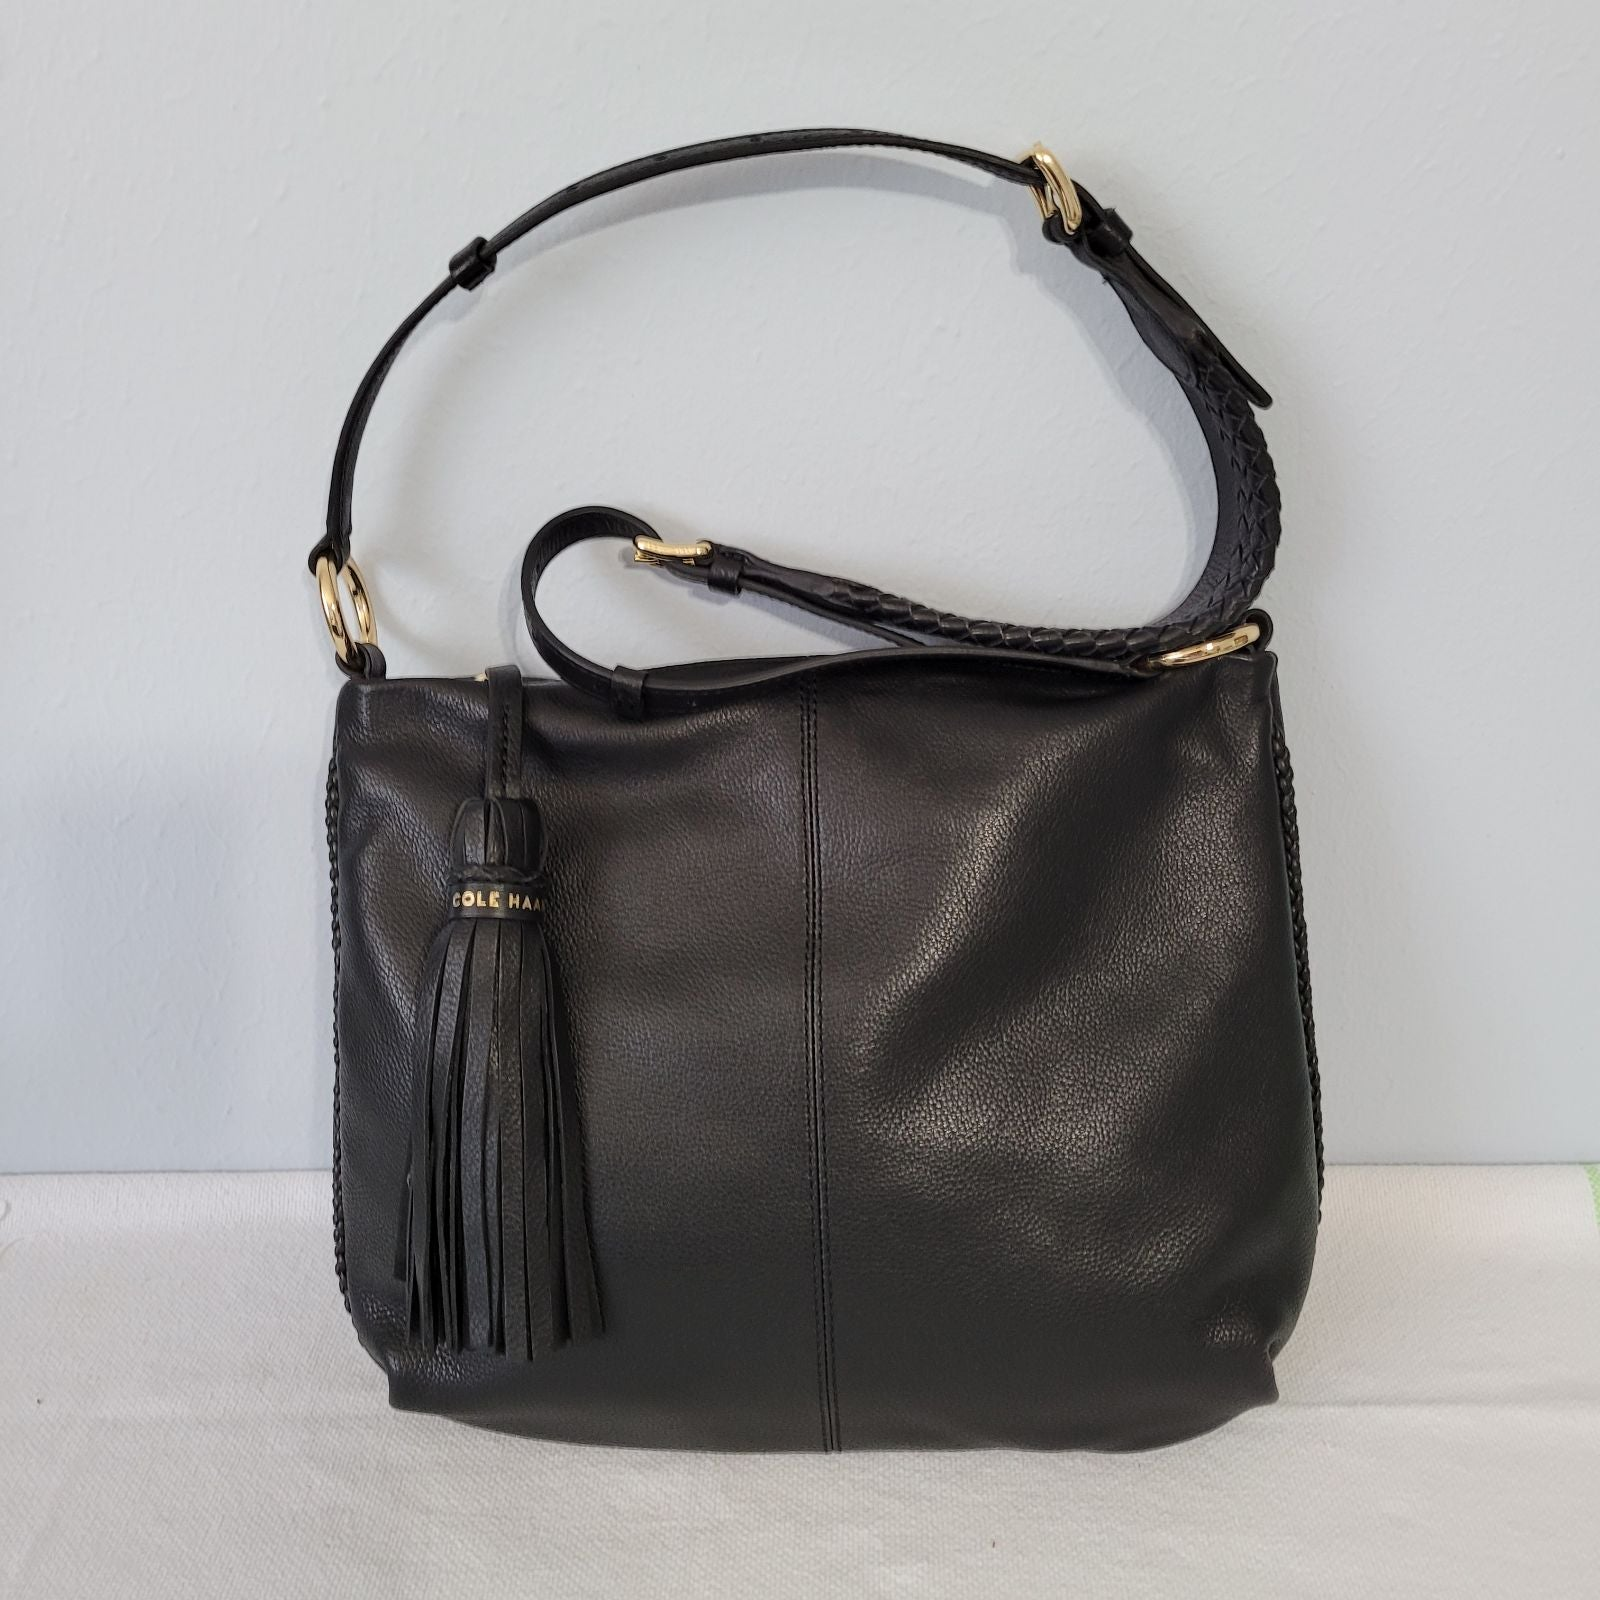 Cole Haan ADALEE Small X-Body Bag